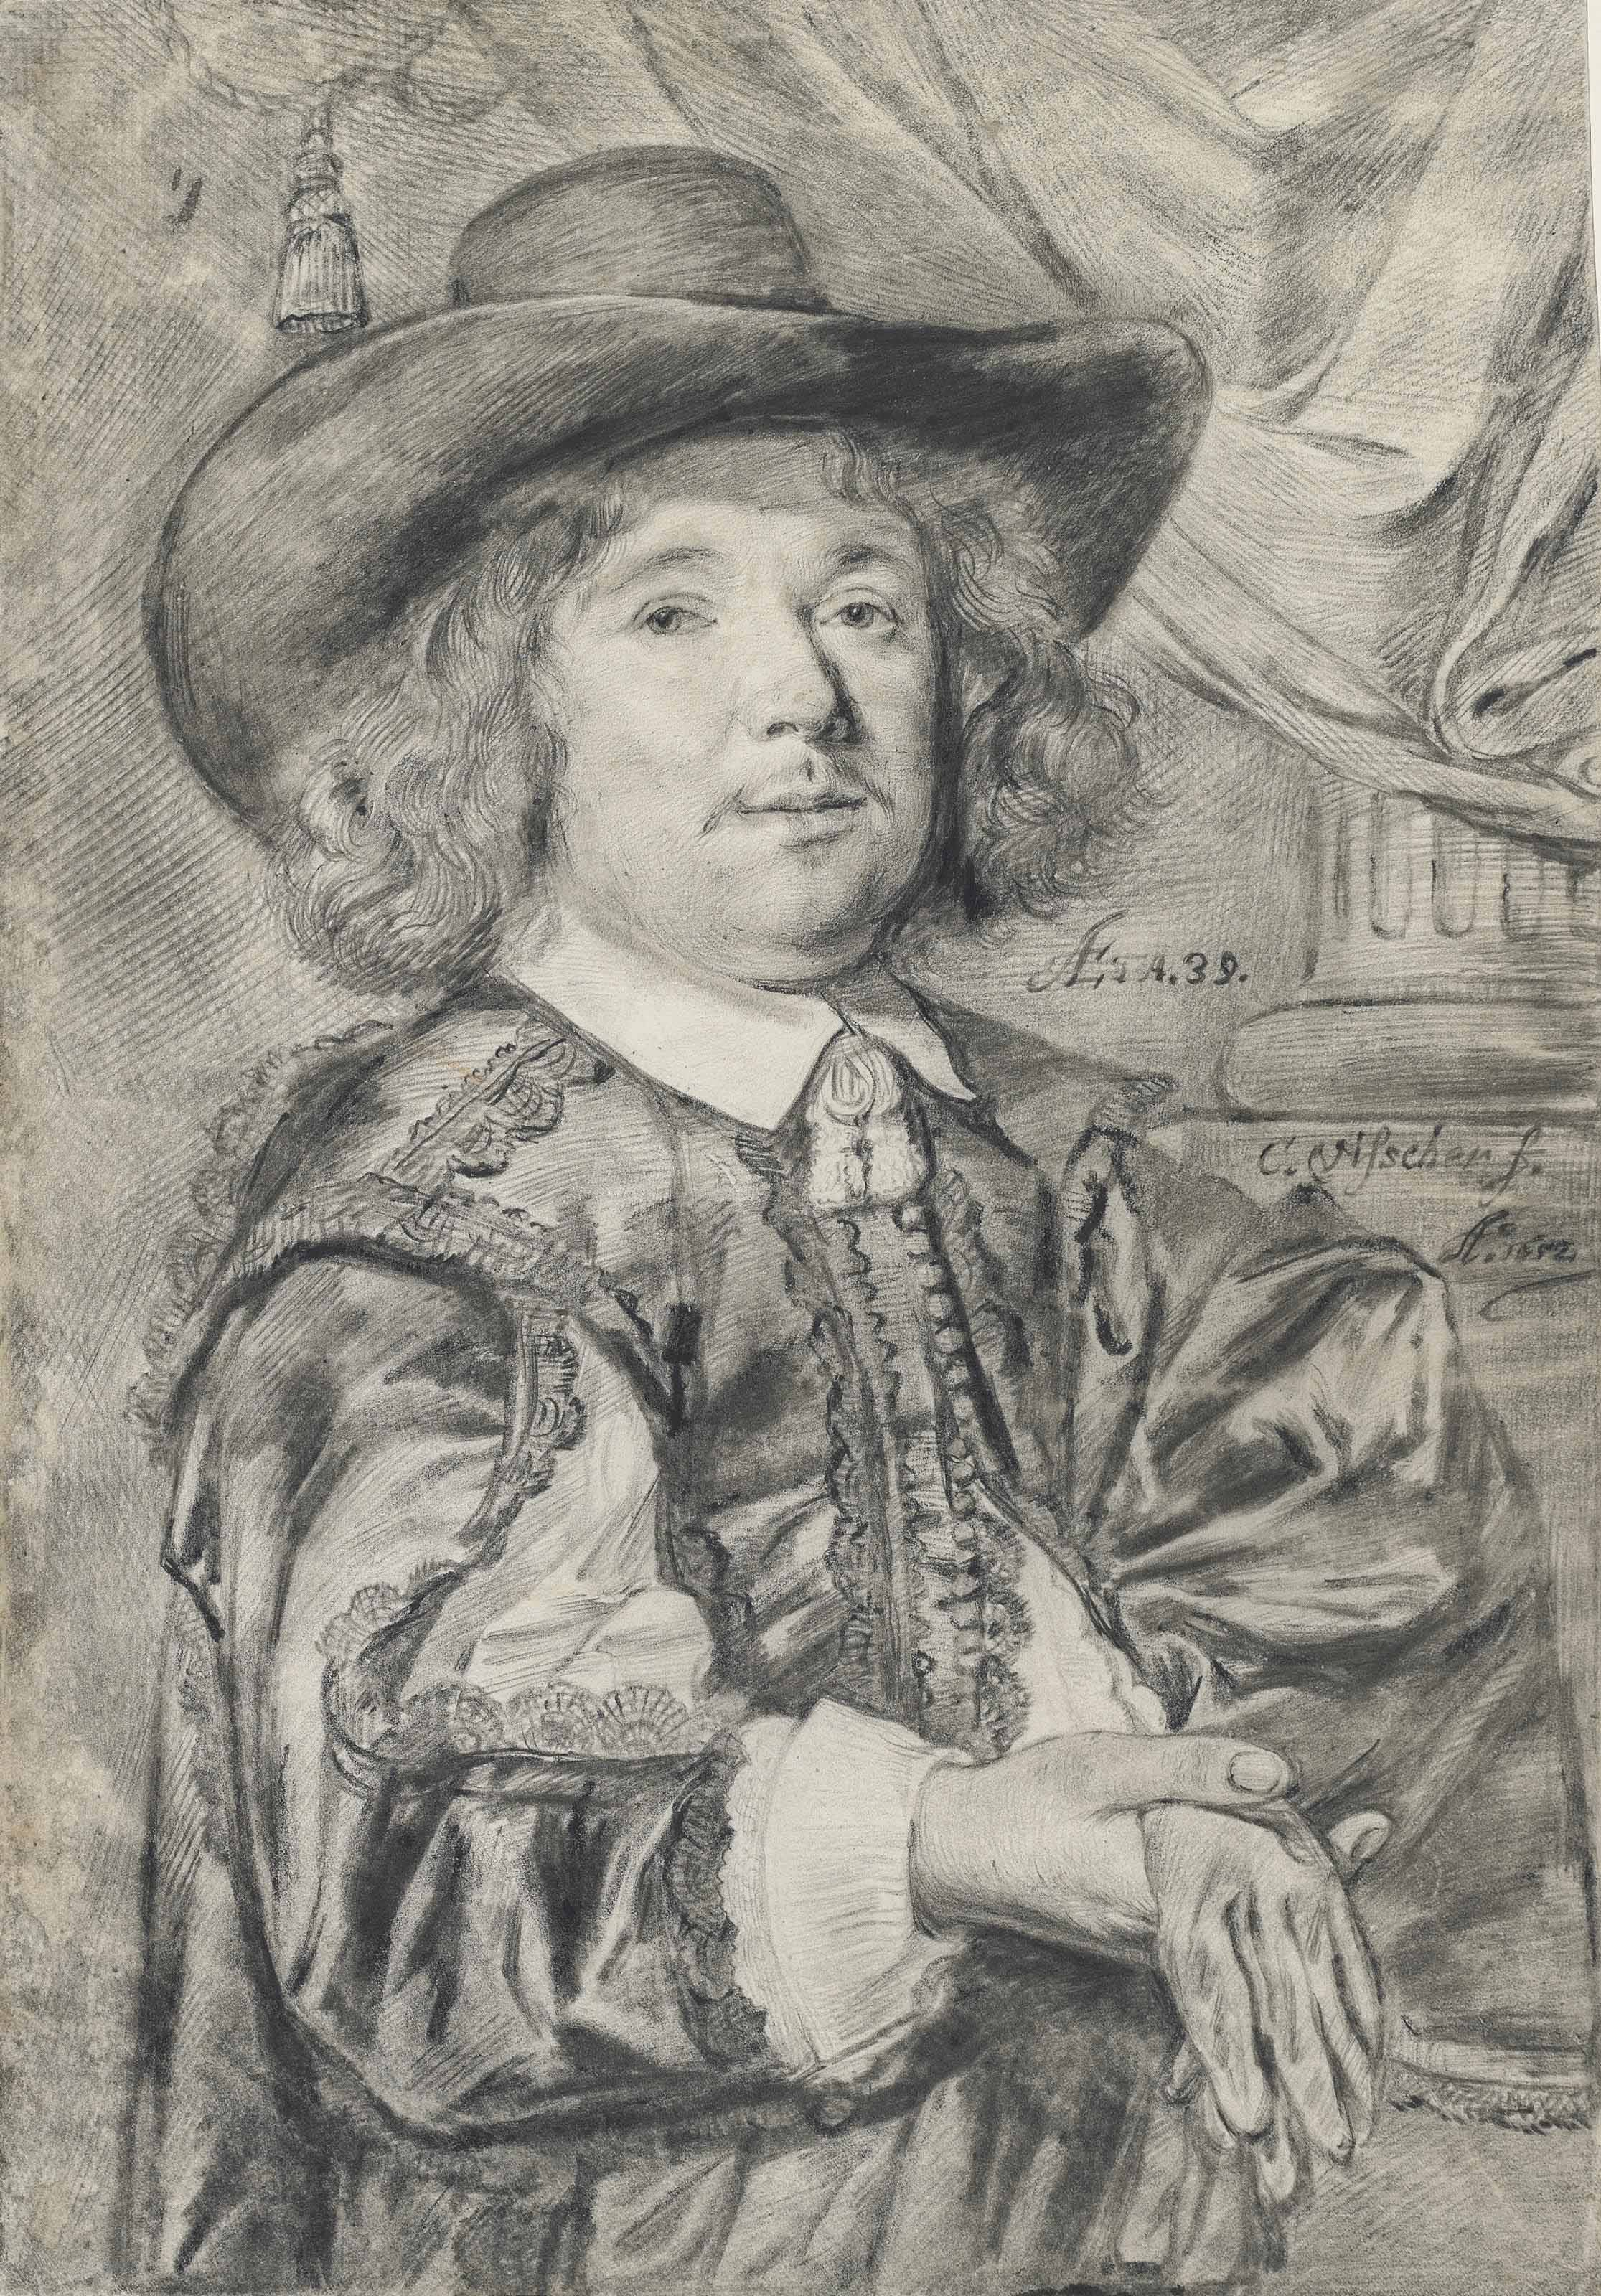 Portrait of a gentleman aged 39, half-length, wearing a wide-brimmed hat, holding his gloves in his right hand